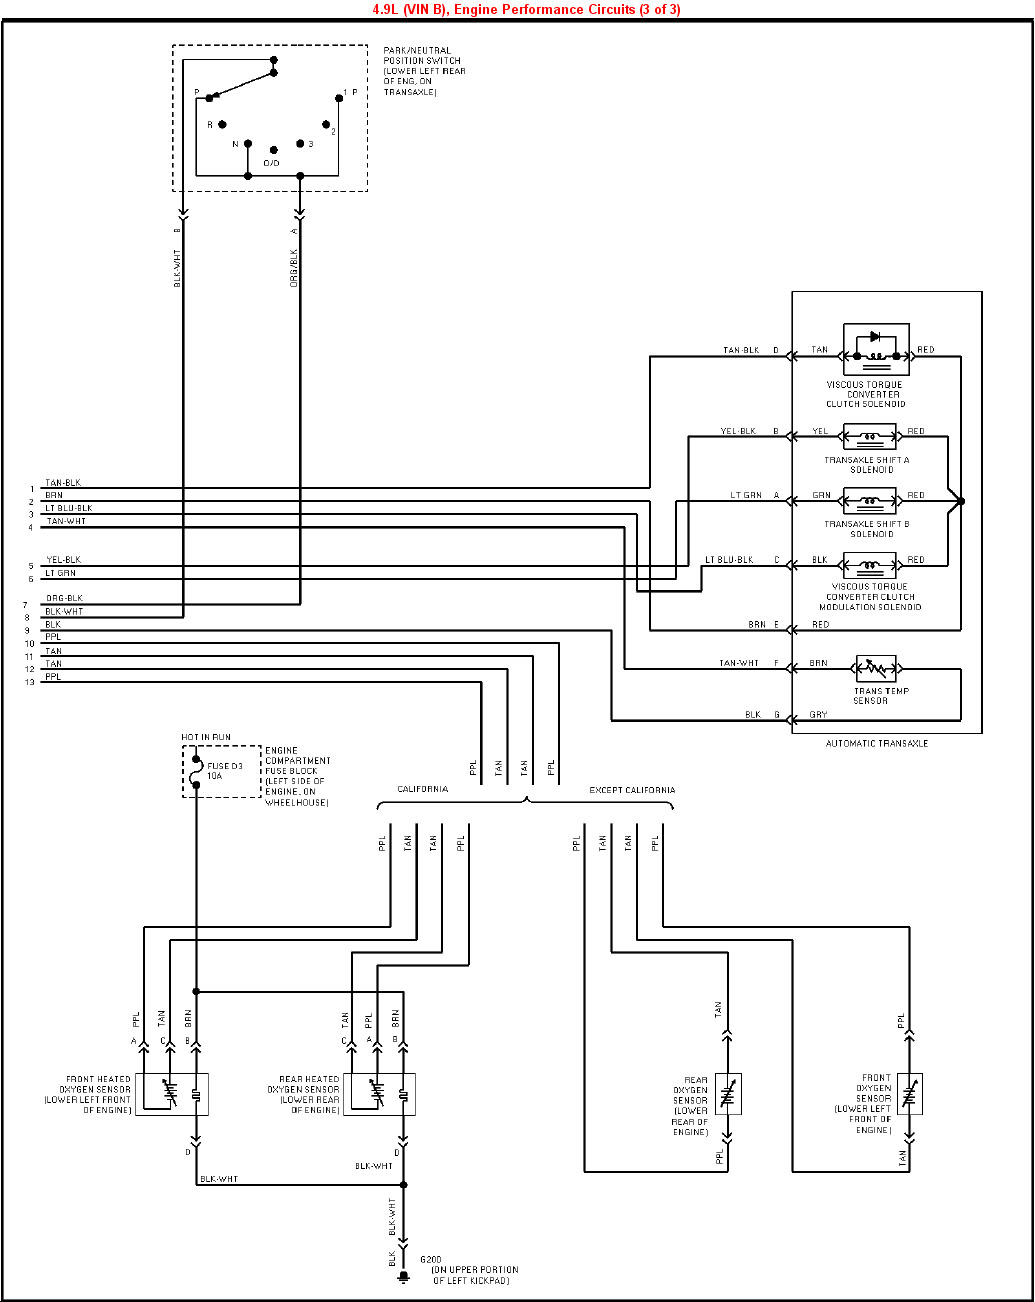 1990 cadillac brougham fuse box diagram trusted wiring diagrams u2022 rh  sivamuni com Cadillac Eldorado Engine Diagram 2002 Cadillac DeVille Wiring- Diagram